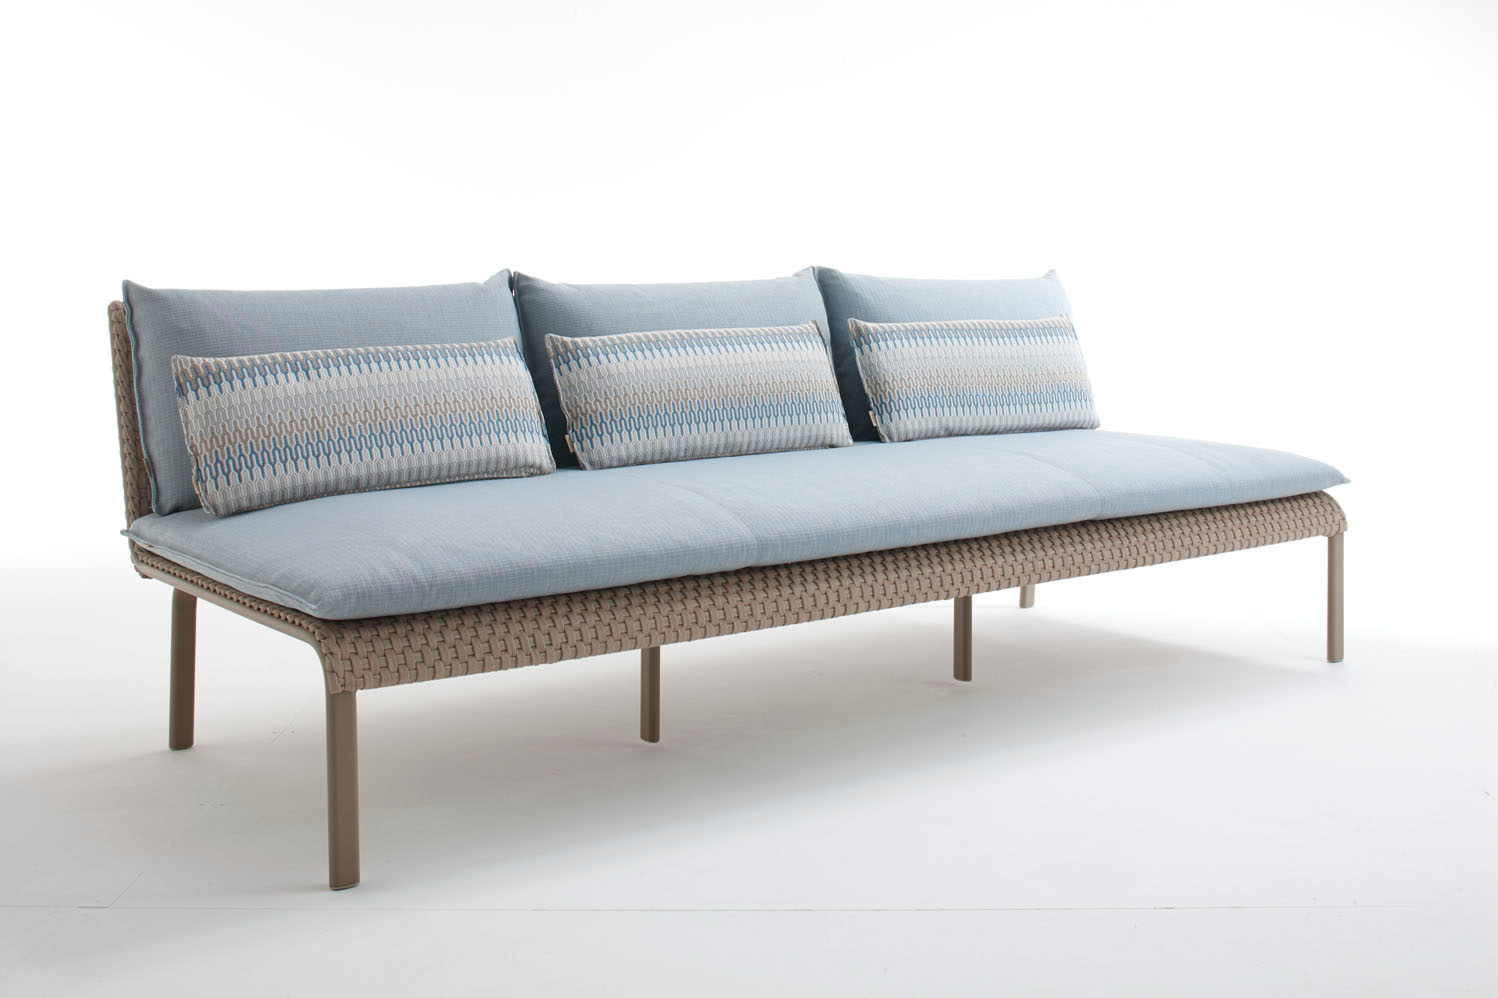 Italian key west high end sectional italian designer for Outdoor furniture high end